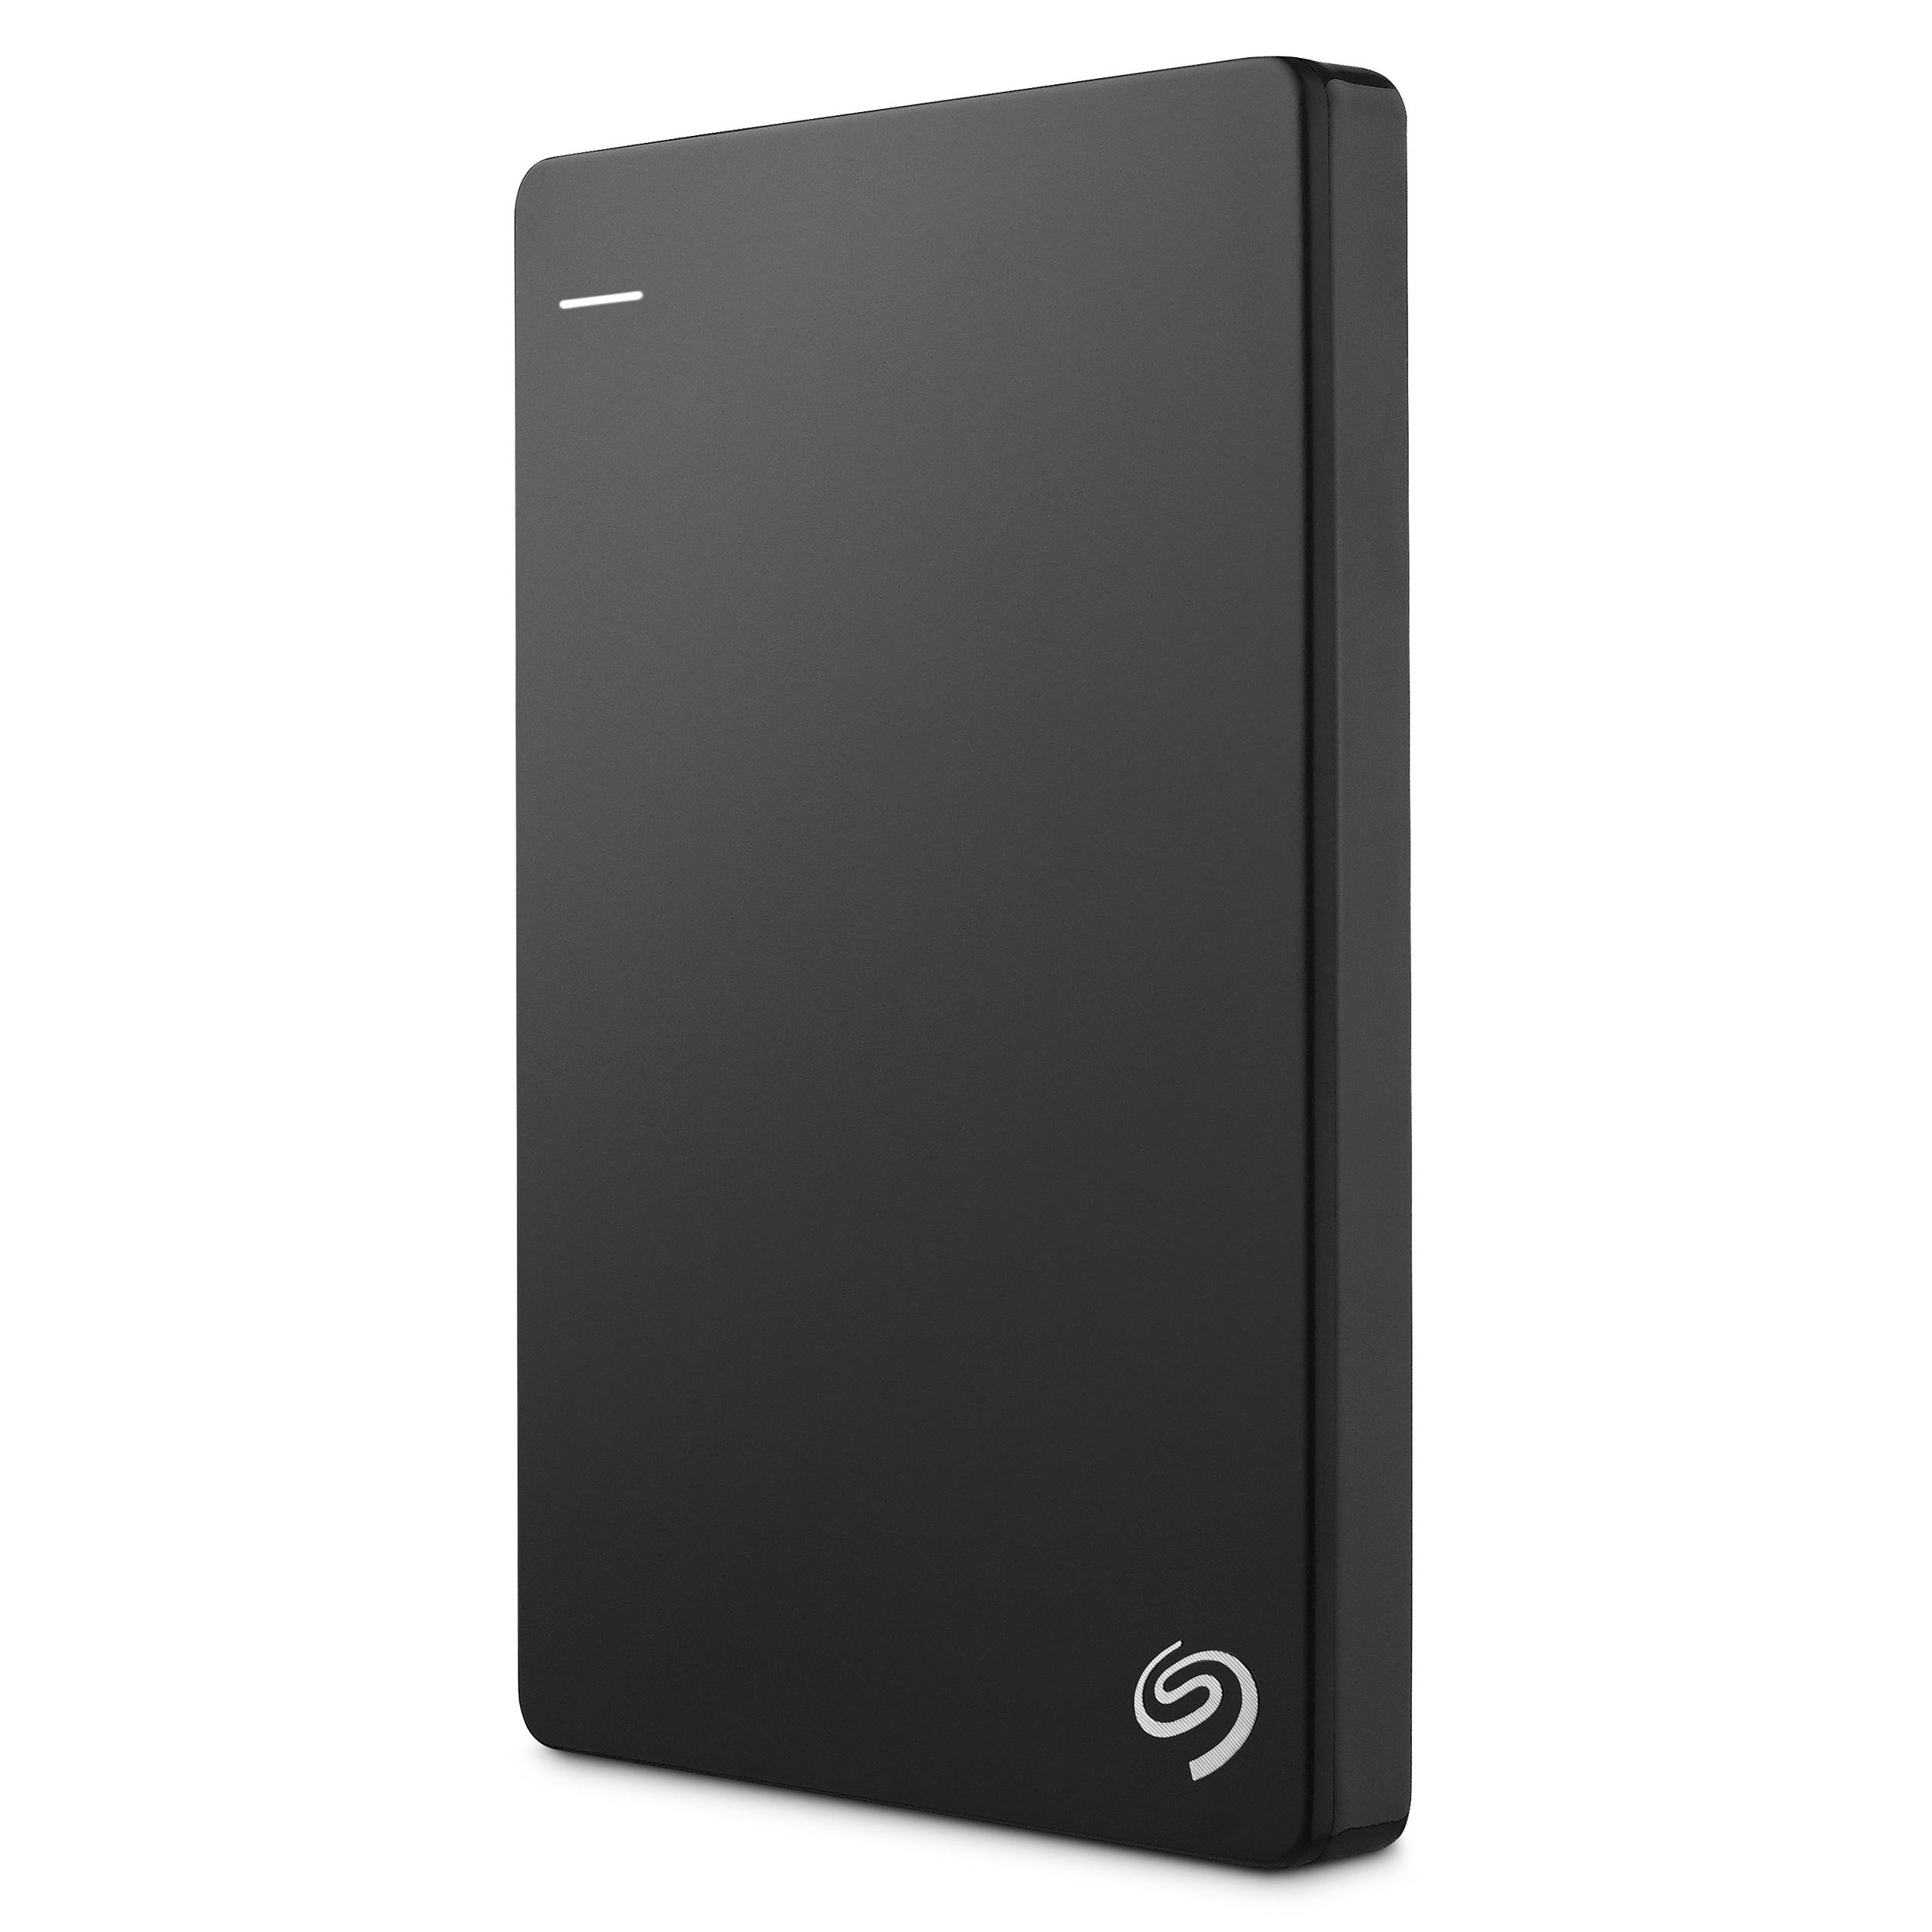 Image result for 35 seagate 2tb usb 3.0 portable external hard drive review